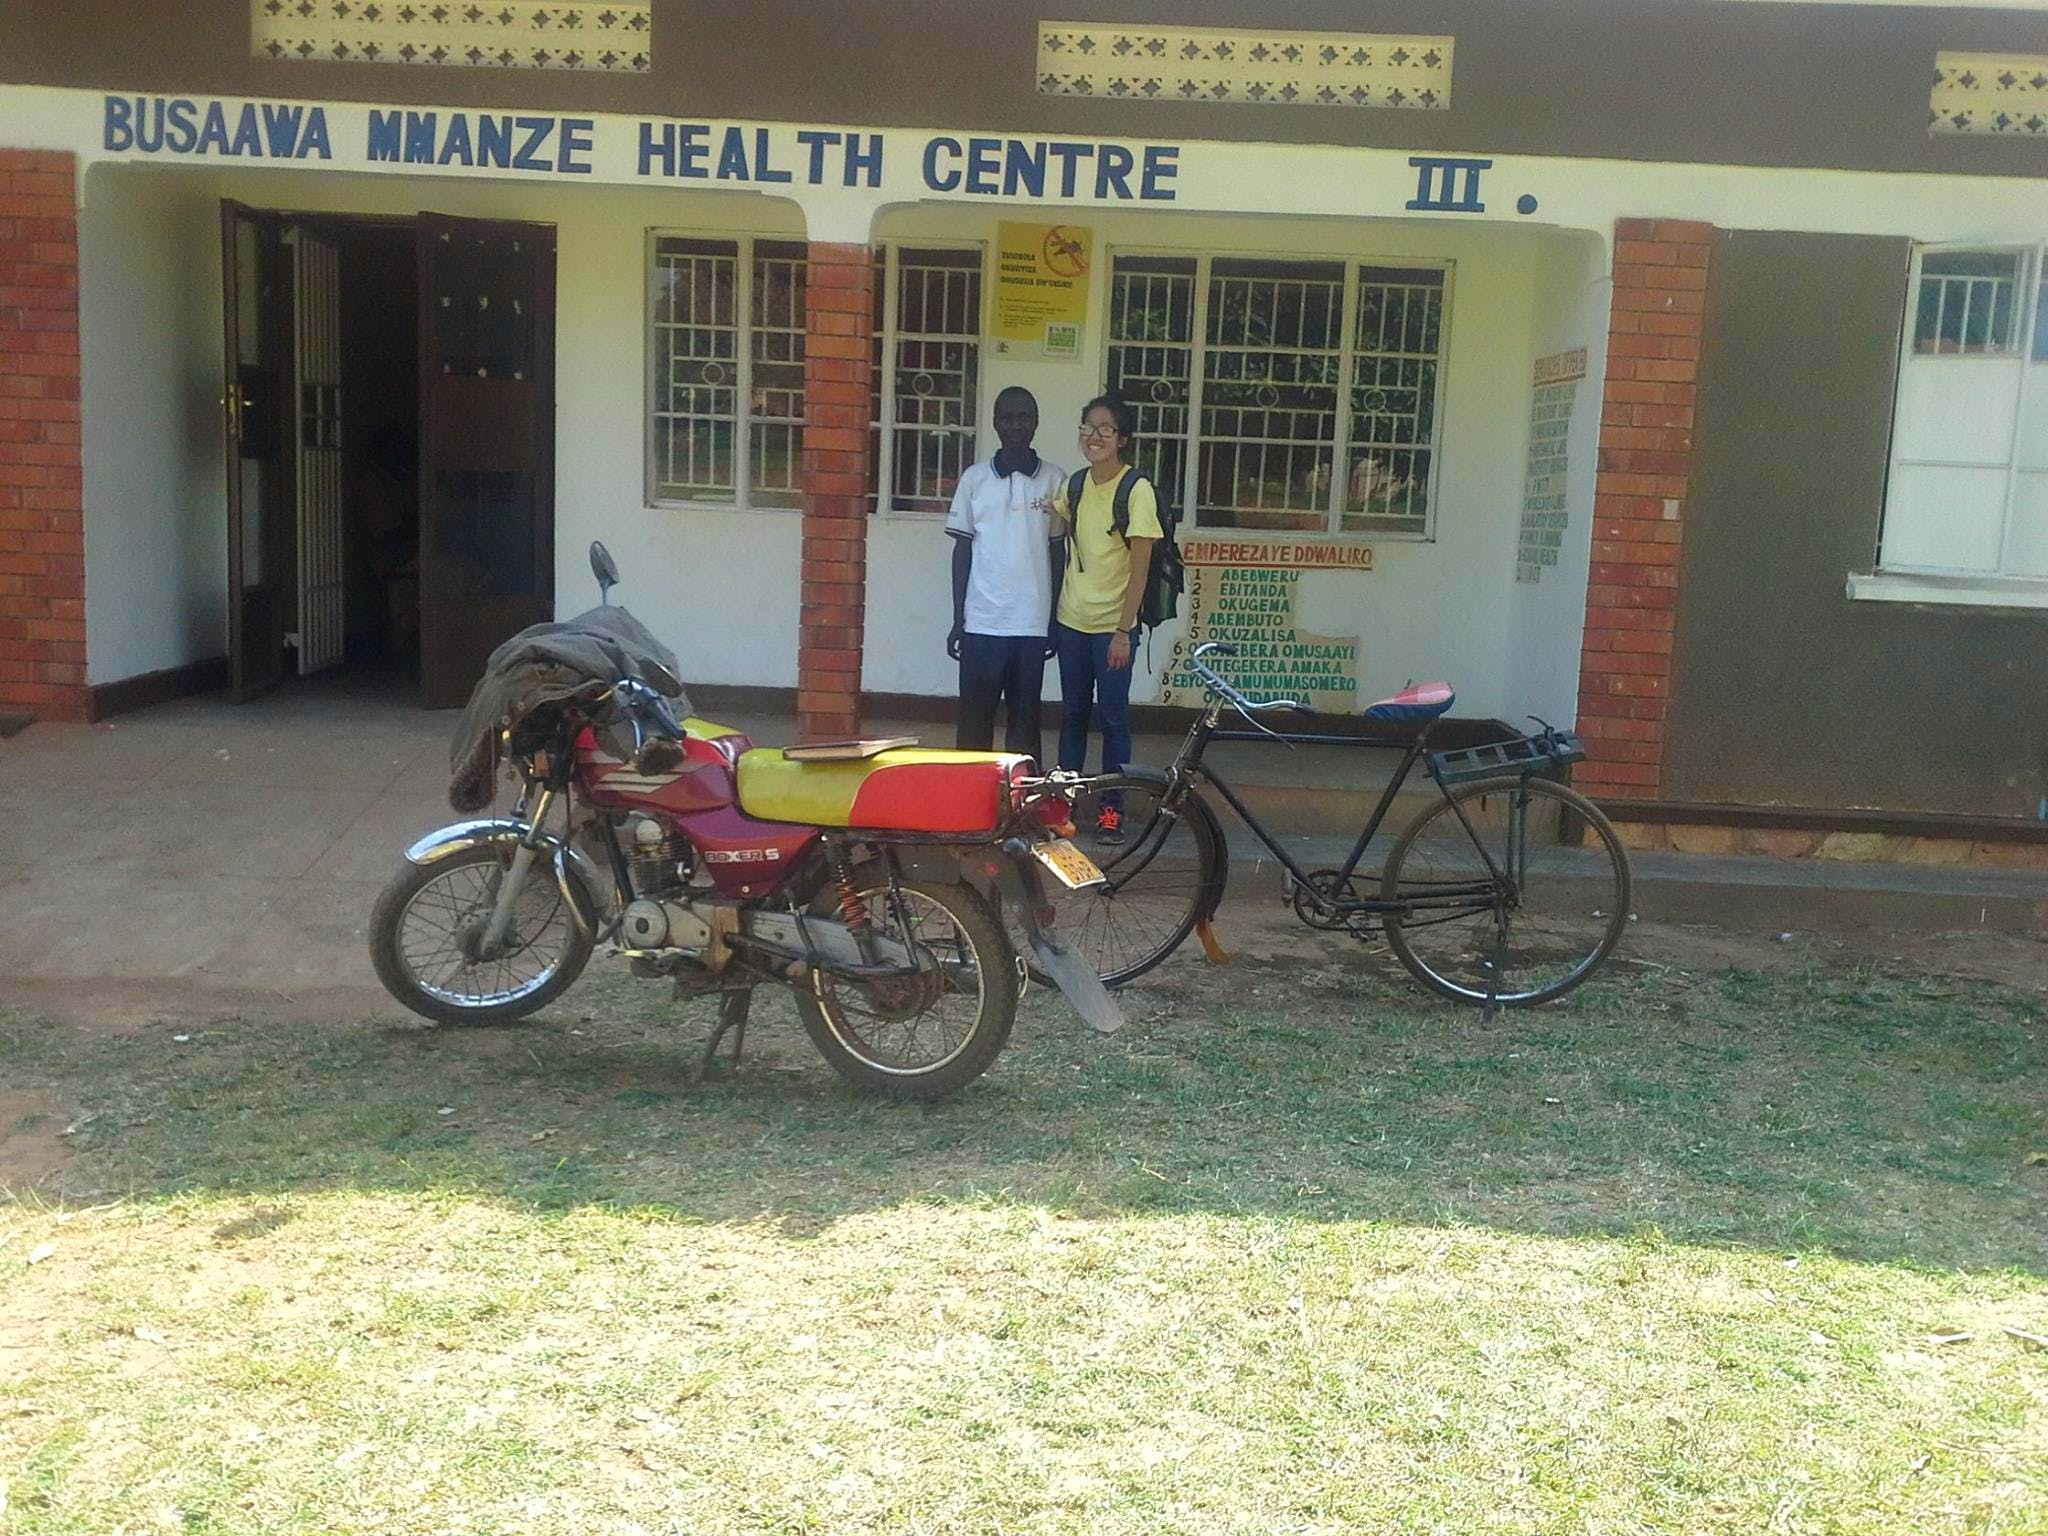 Medical health provision